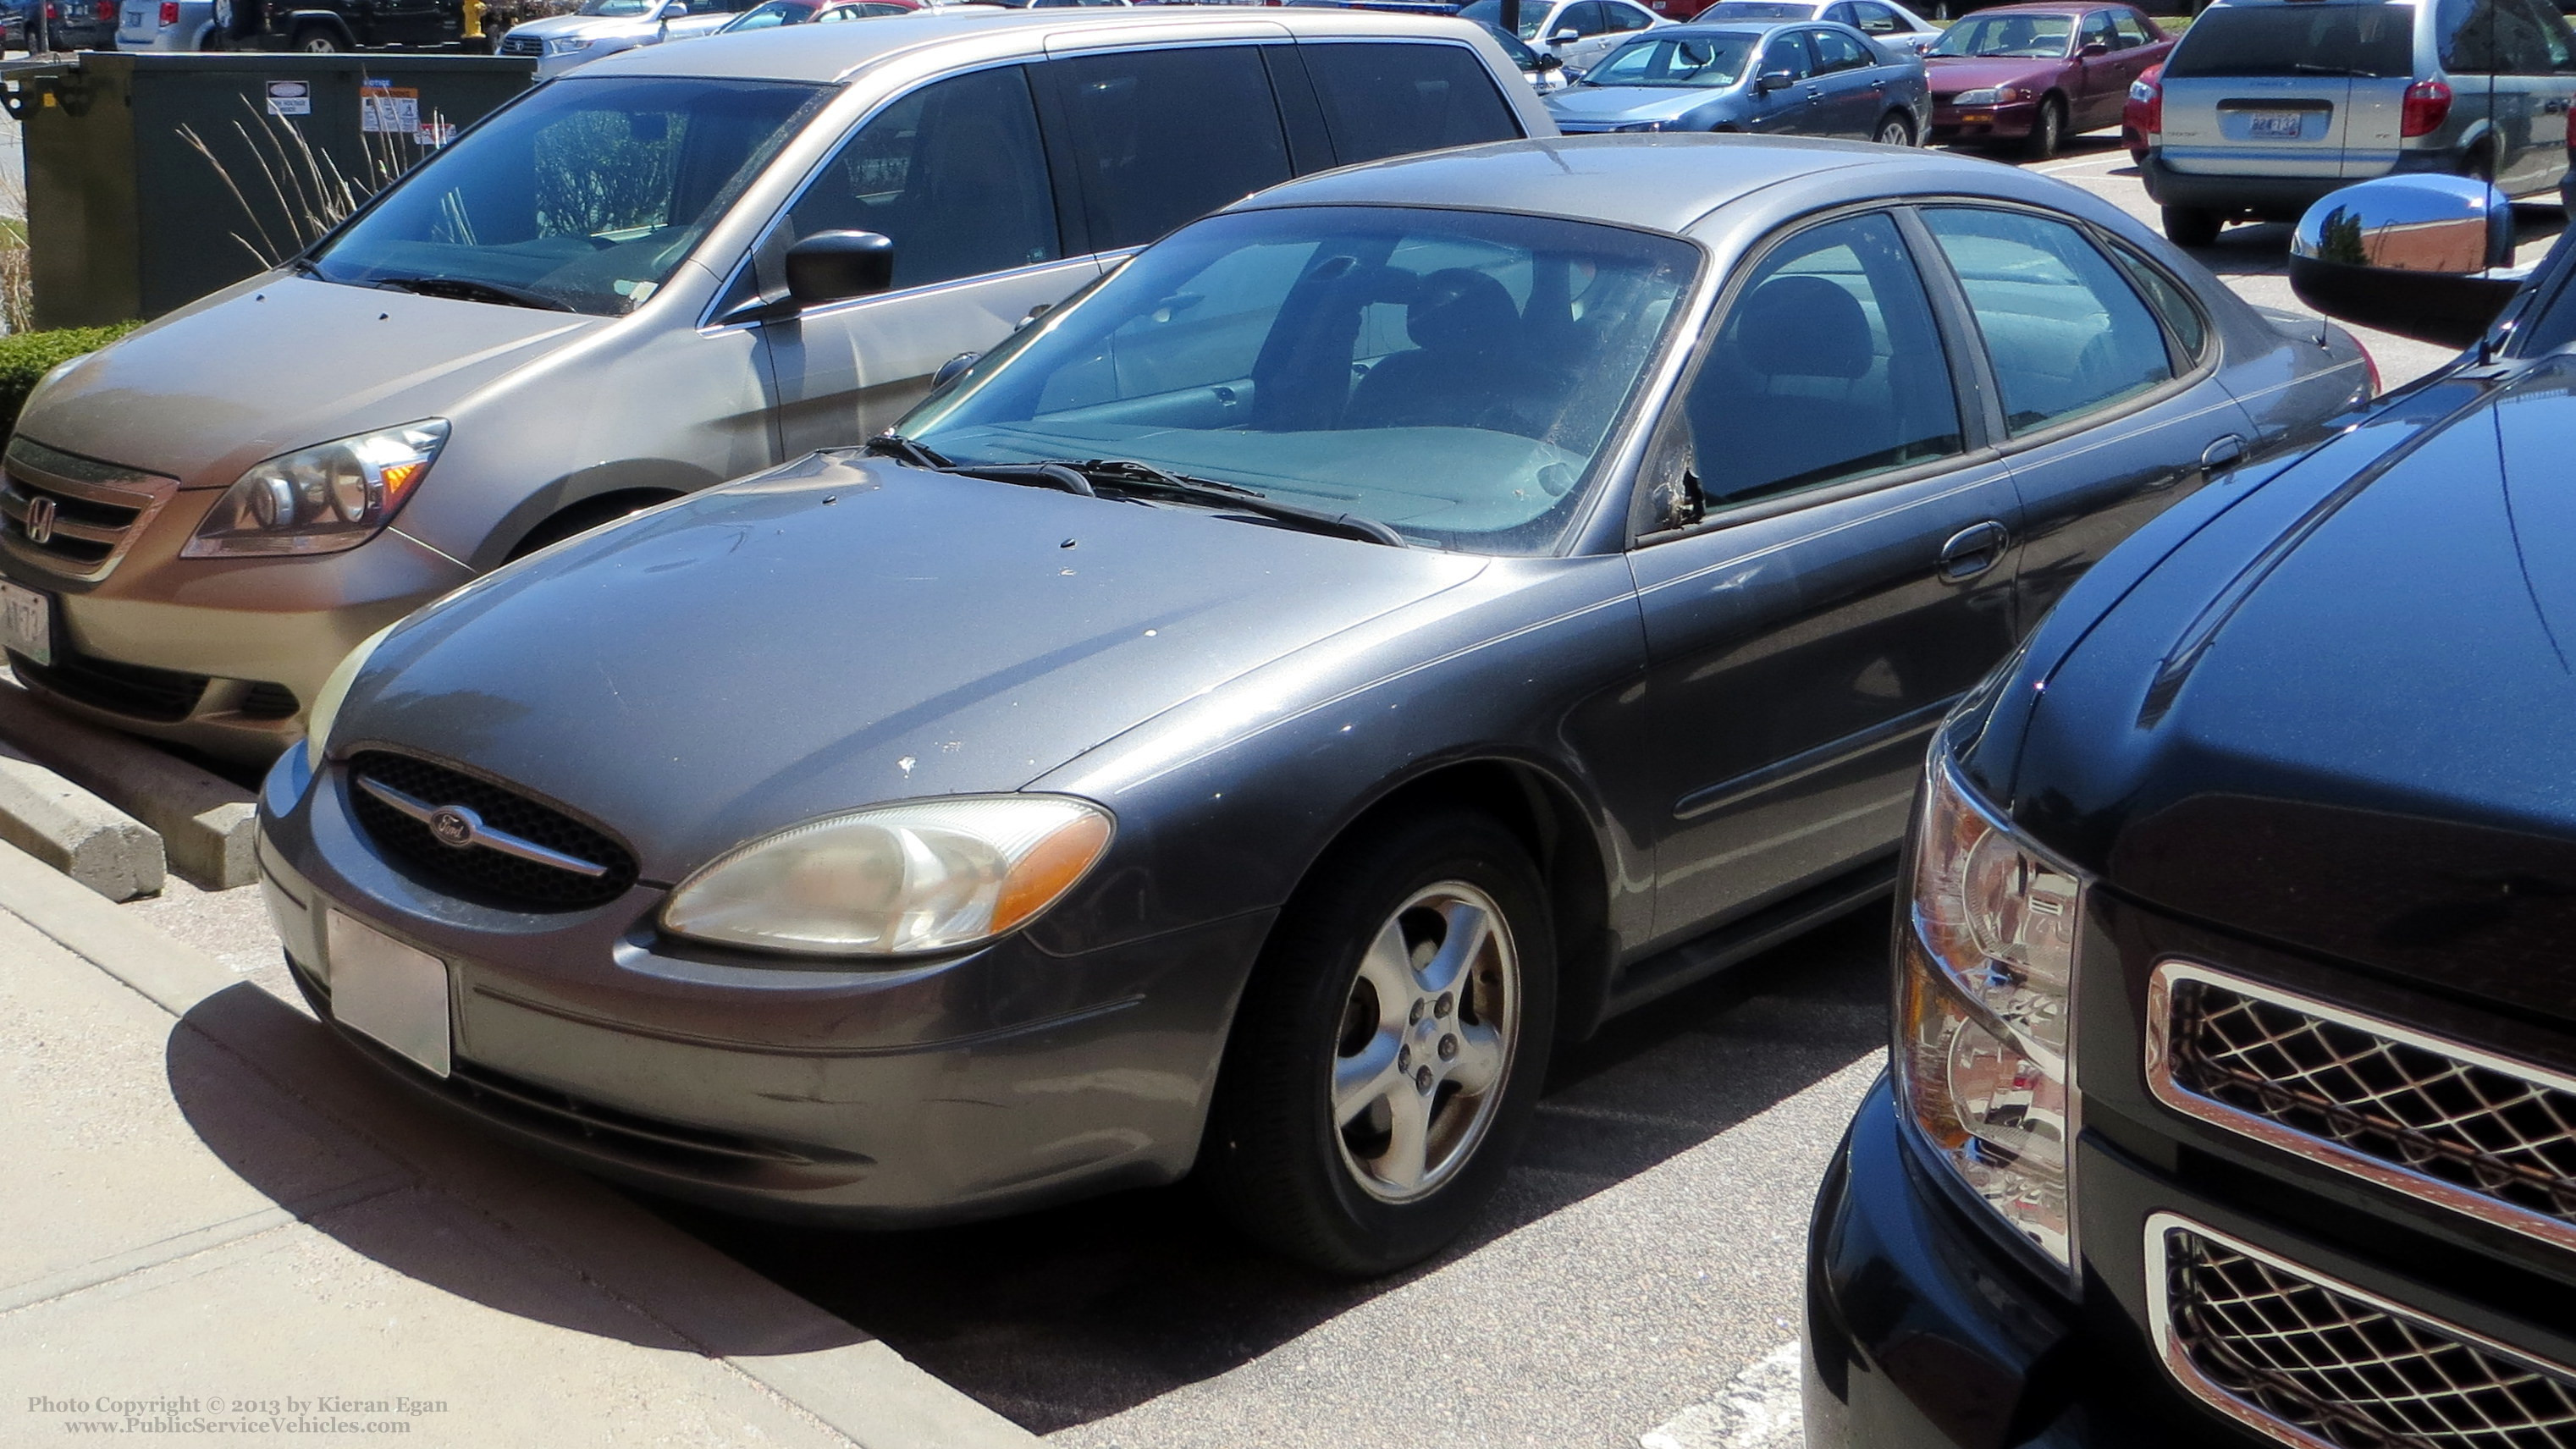 A photo  of Rhode Island State Police             Unmarked Unit, a 2000-2003 Ford Taurus             taken by Kieran Egan